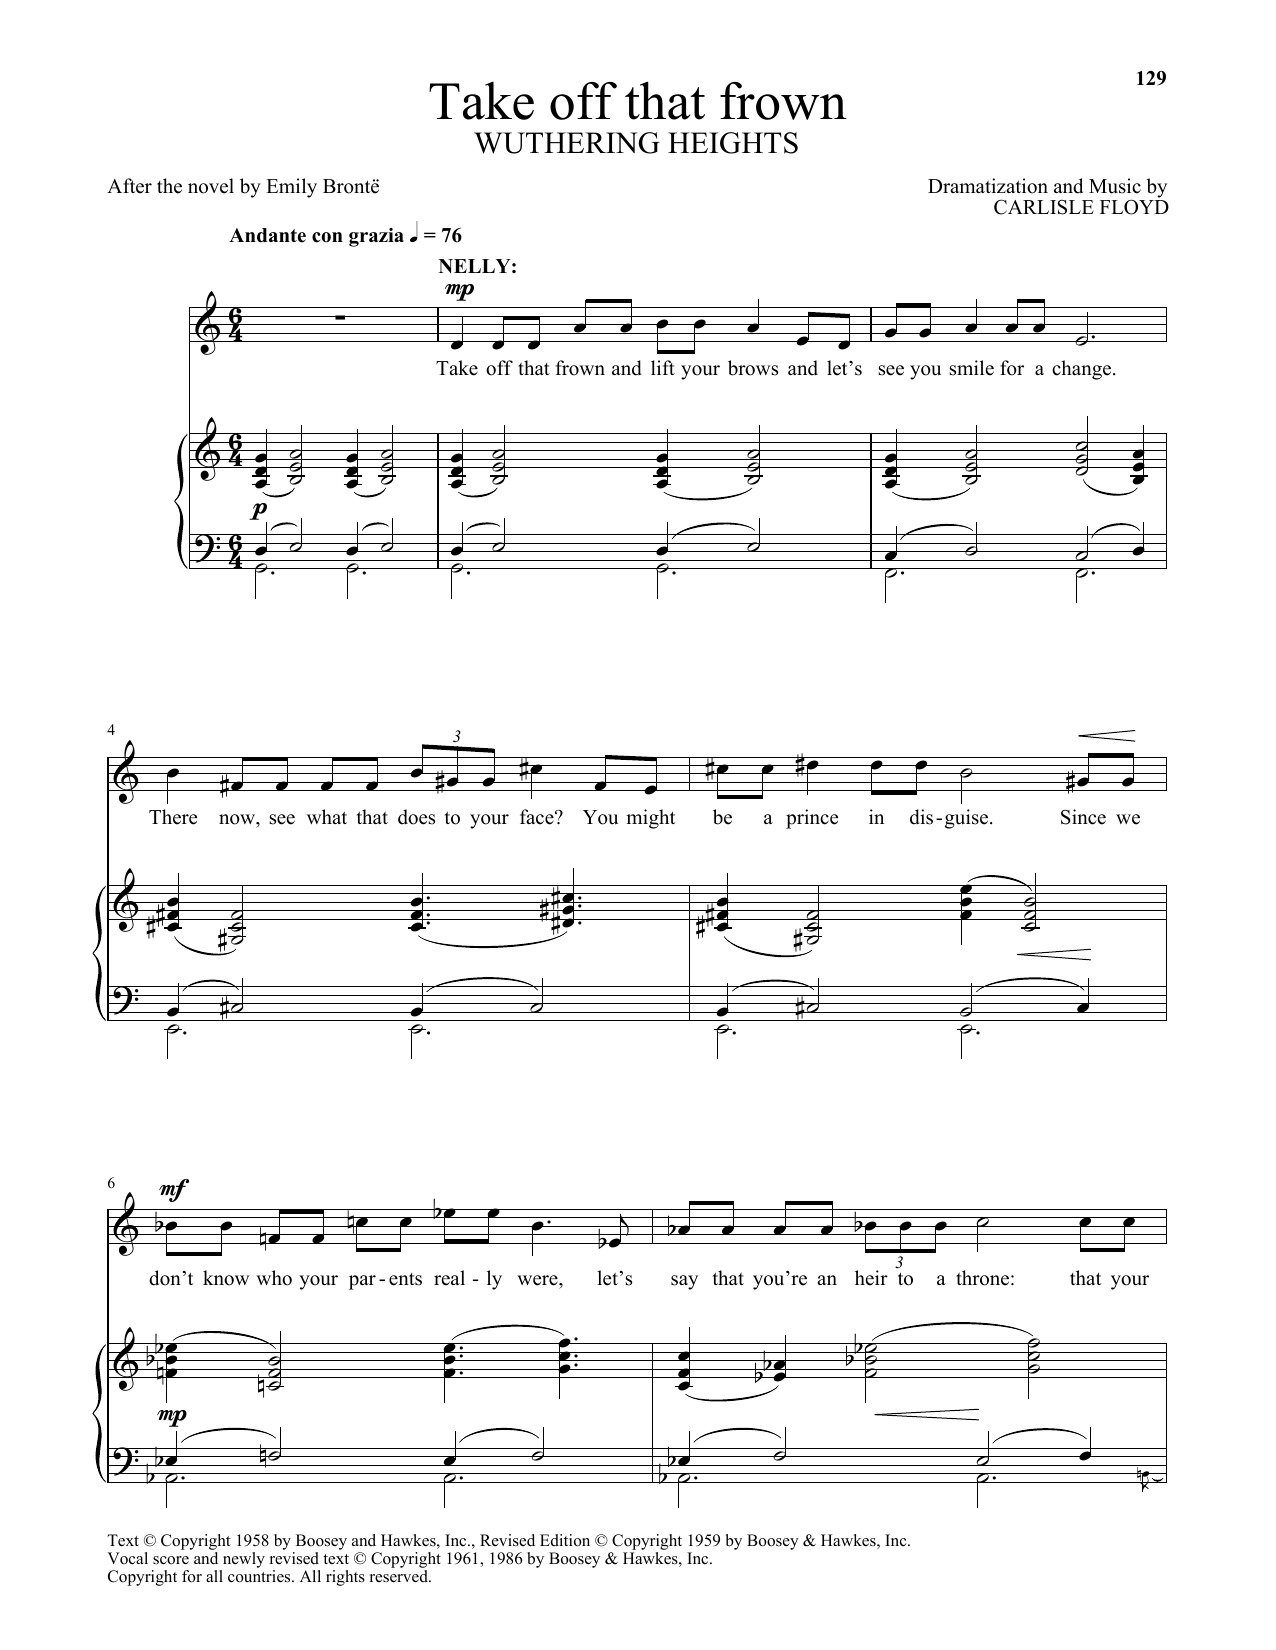 Carlisle Floyd Take off that frown (from Wuthering Heights) sheet music notes and chords. Download Printable PDF.